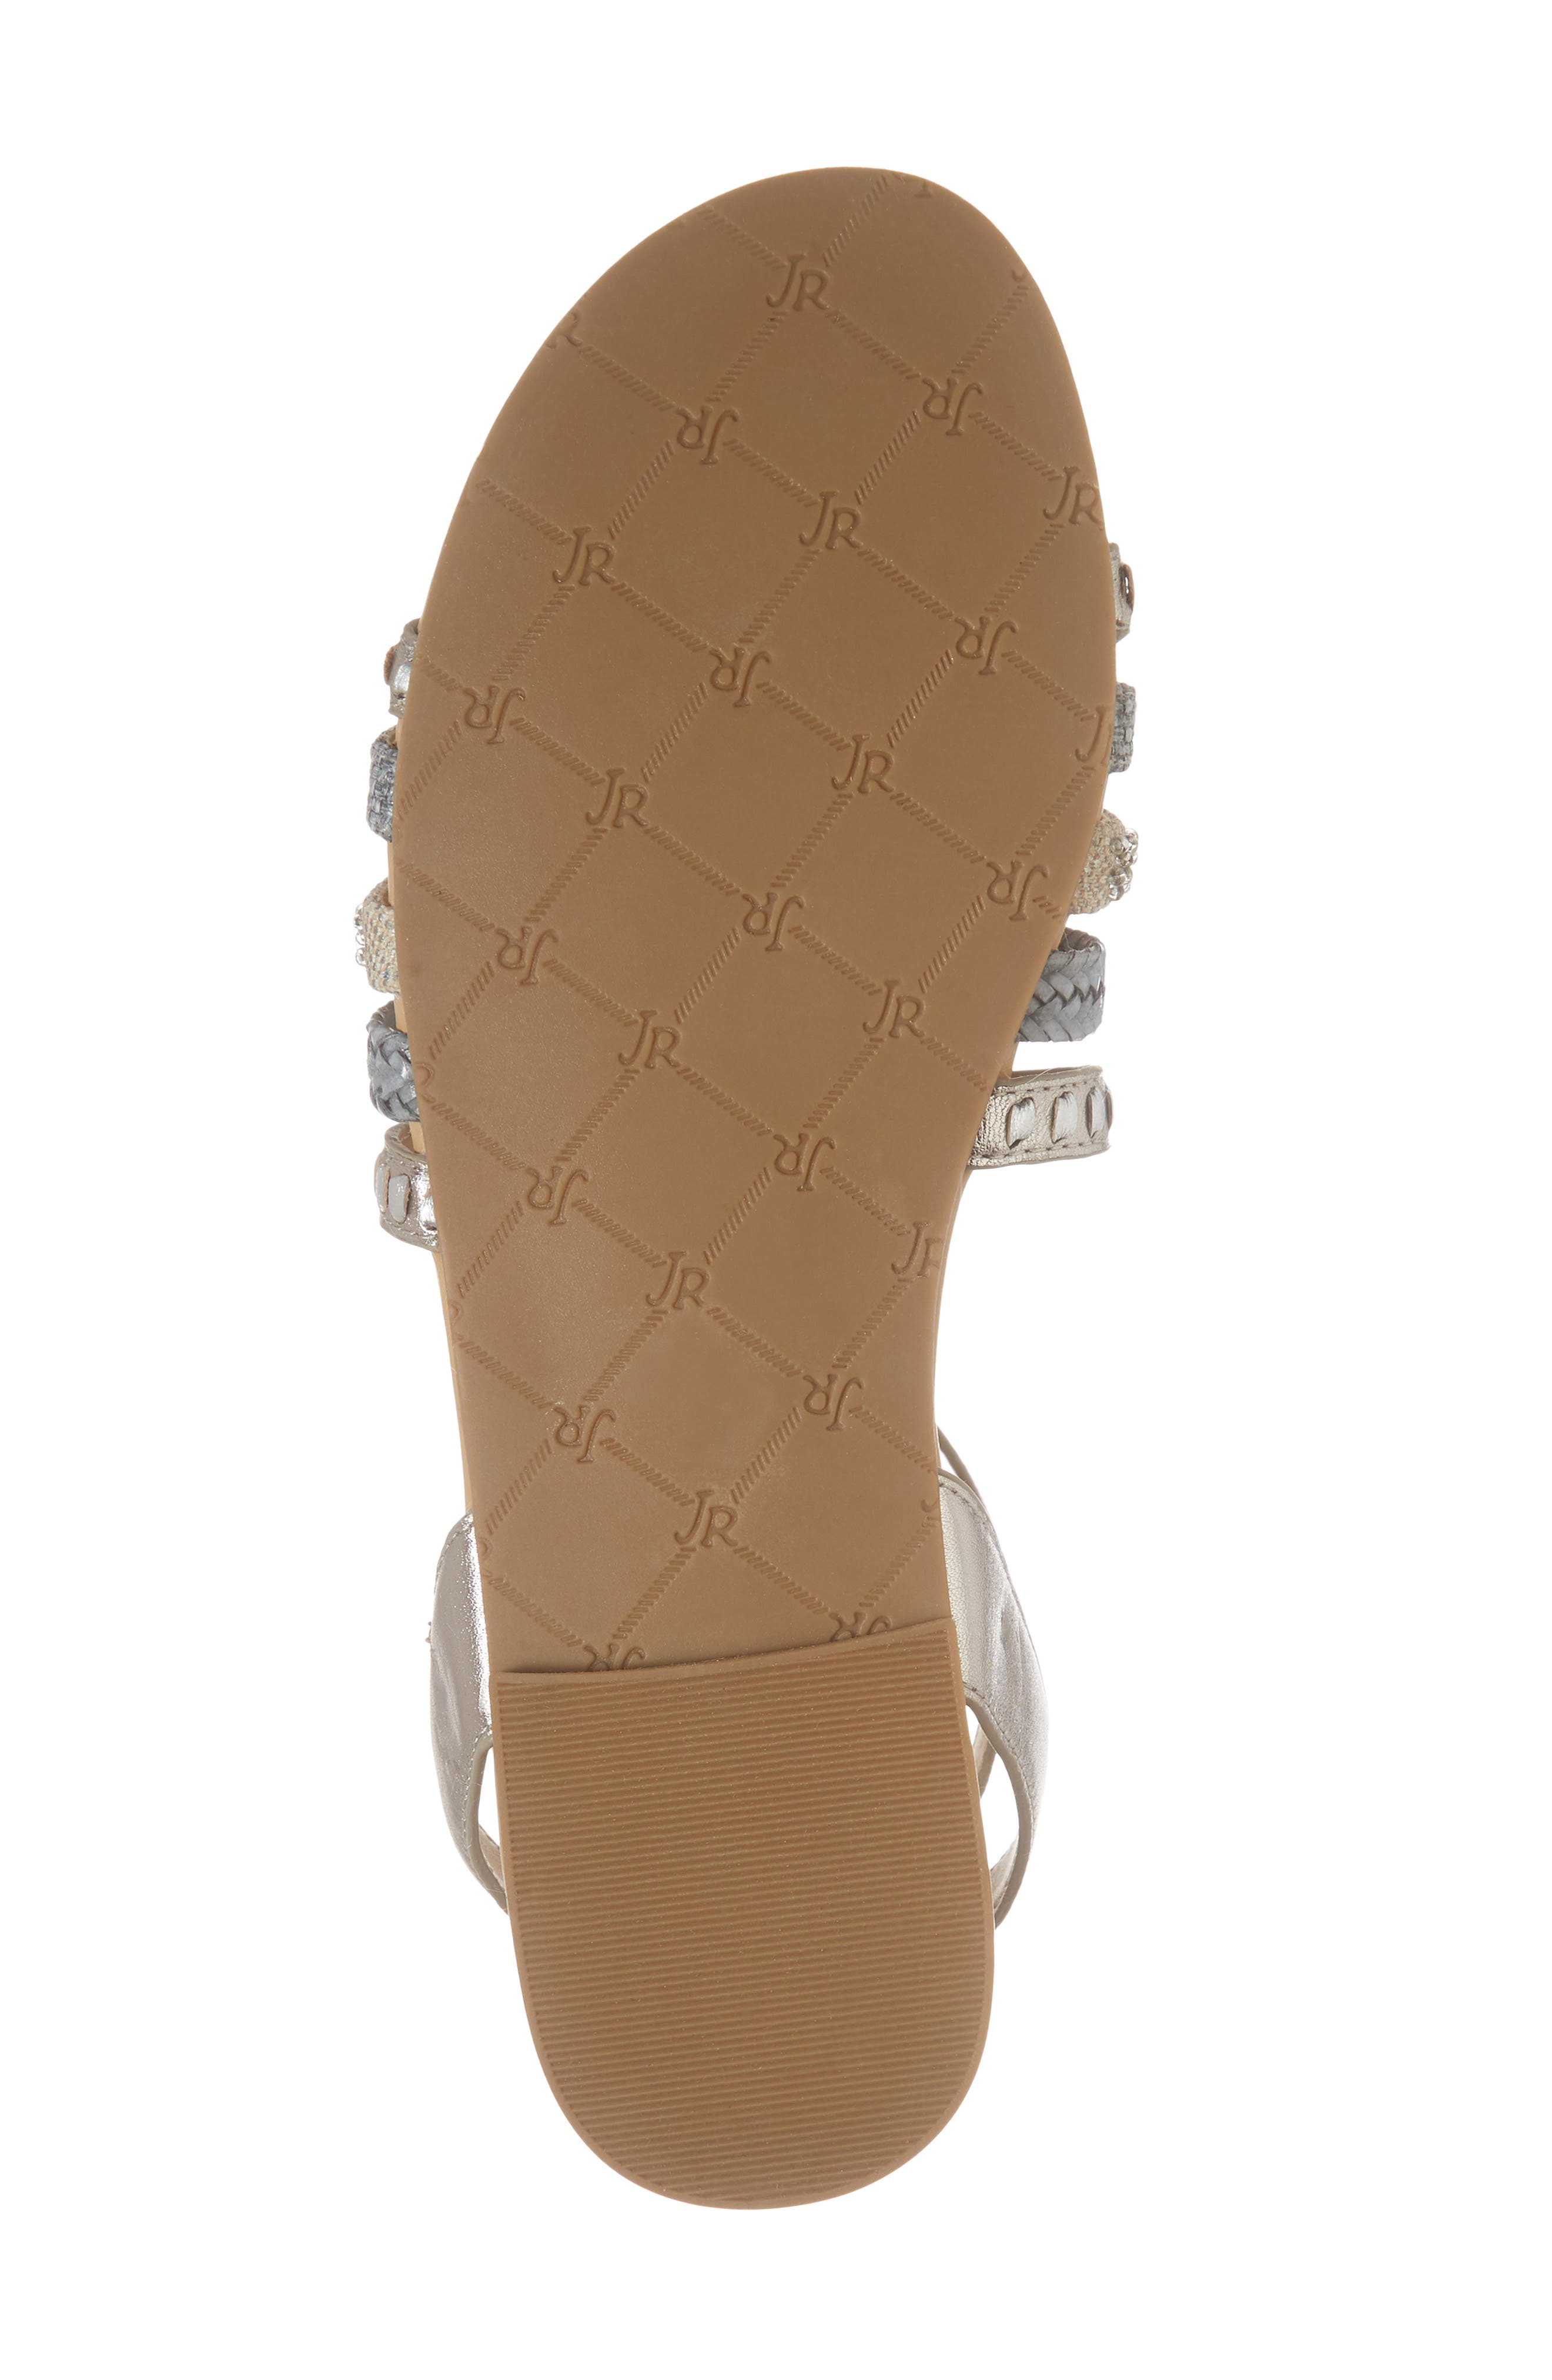 Hannah Braided Embellished Sandal,                             Alternate thumbnail 6, color,                             040